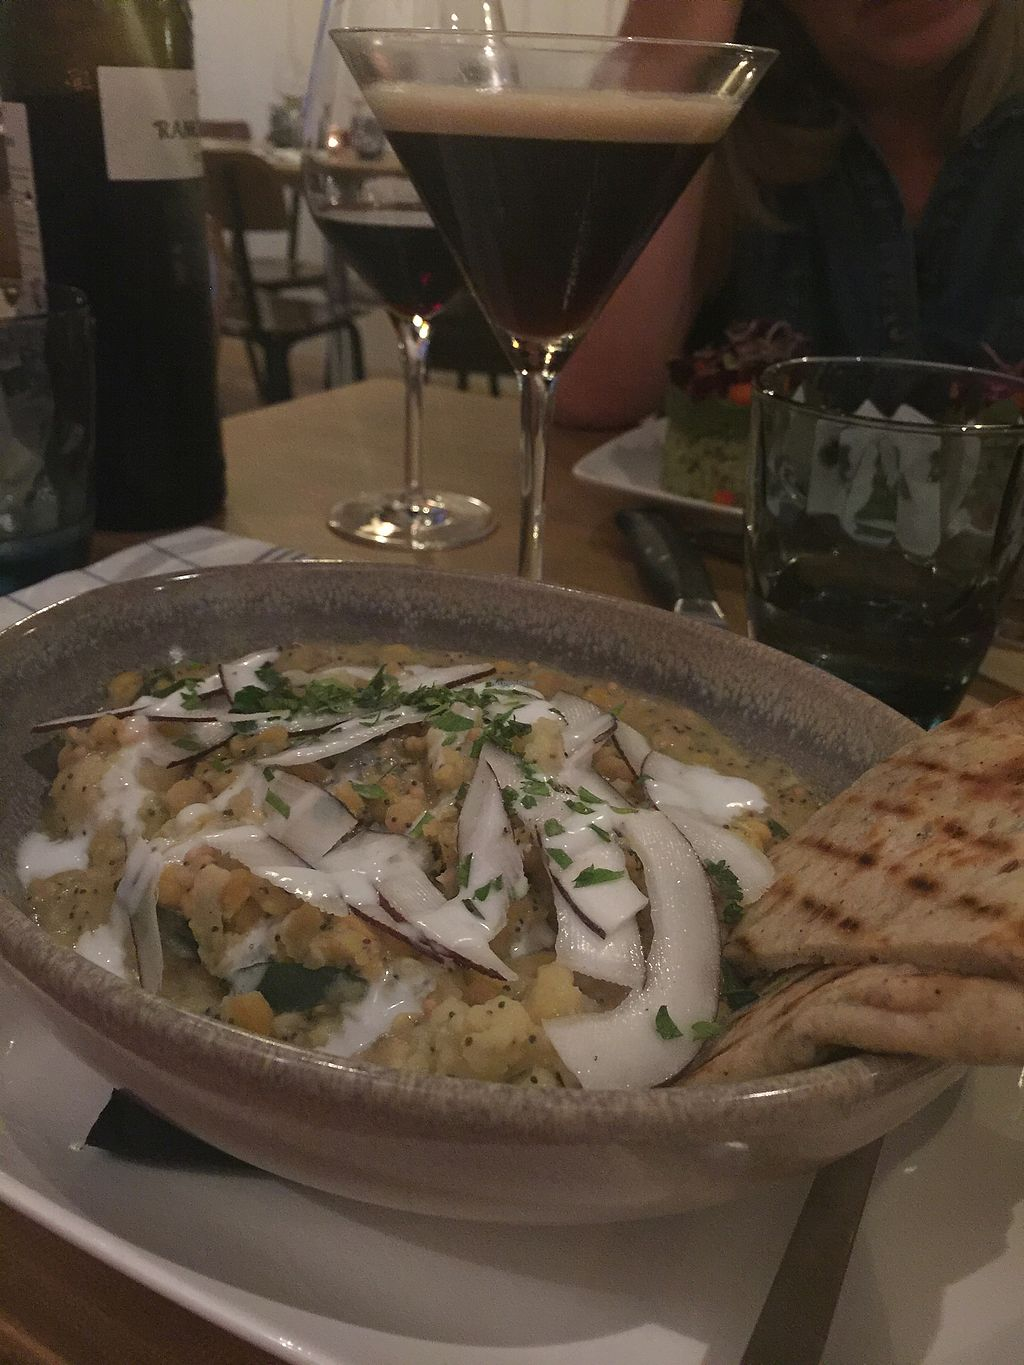 """Photo of Mama 5  by <a href=""""/members/profile/lizpounsett"""">lizpounsett</a> <br/>great food and cocktails!  <br/> August 18, 2017  - <a href='/contact/abuse/image/95066/294103'>Report</a>"""